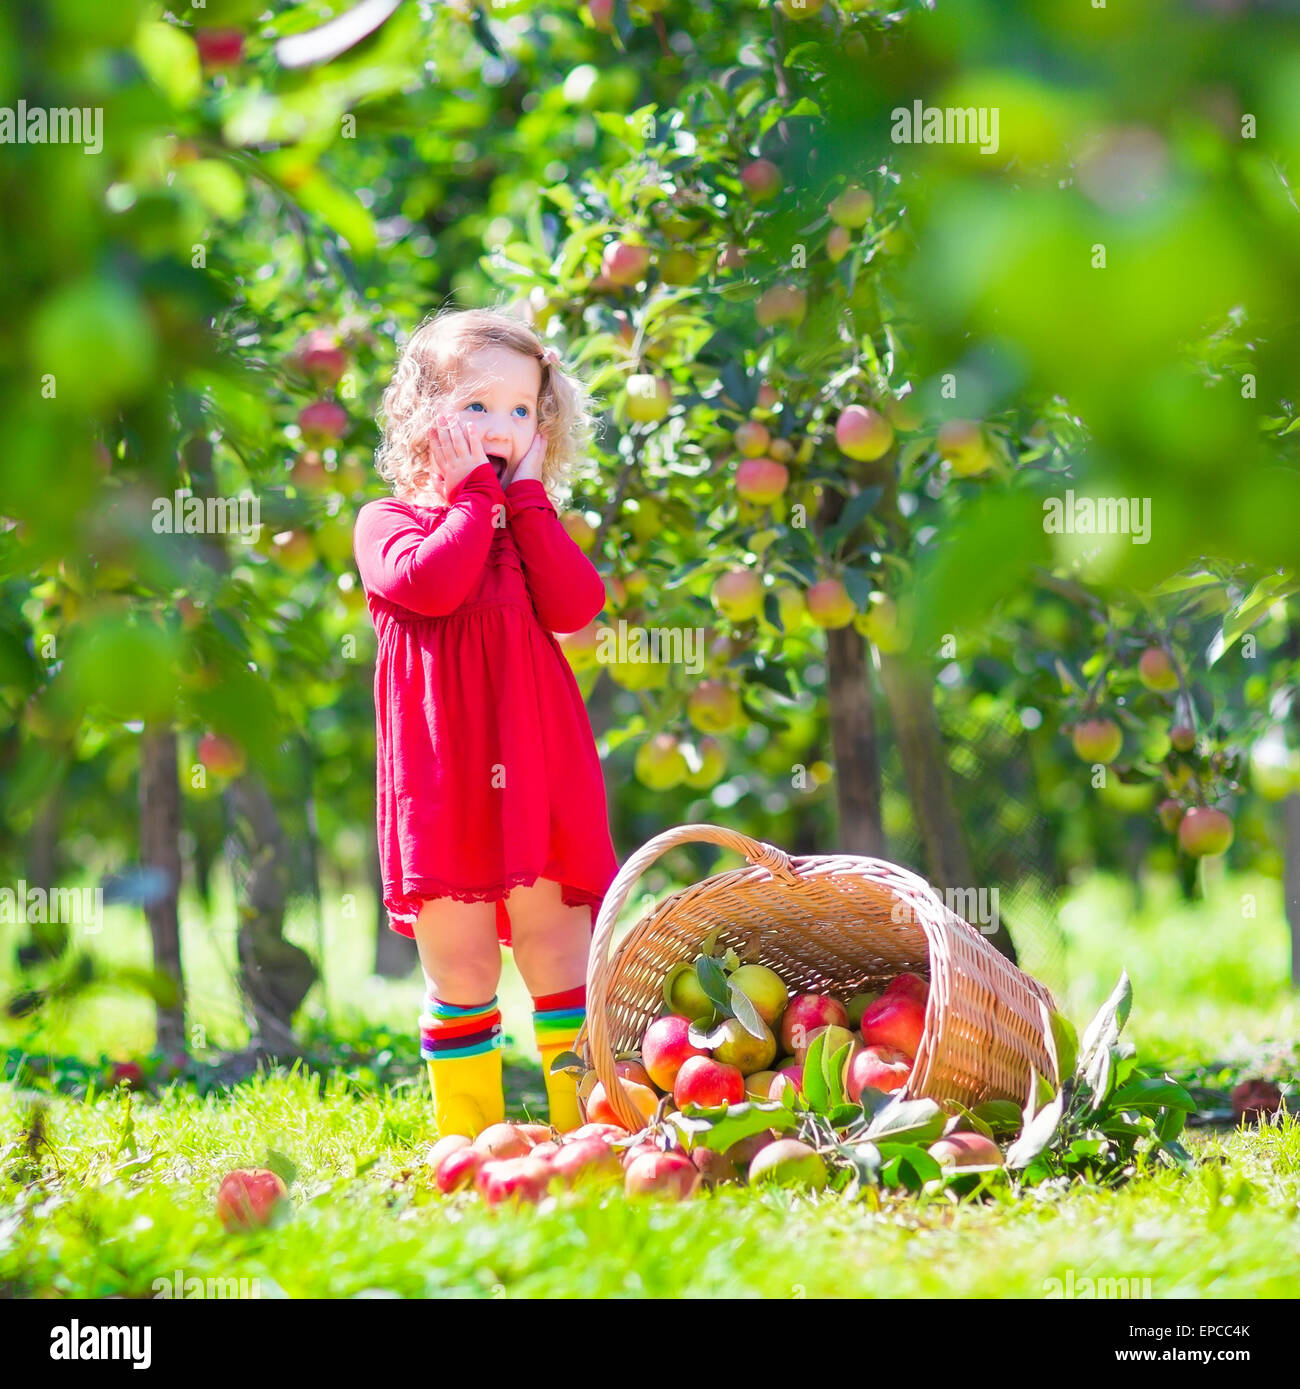 d71c28ca7d0 Adorable little toddler girl with curly hair wearing a red dress ...